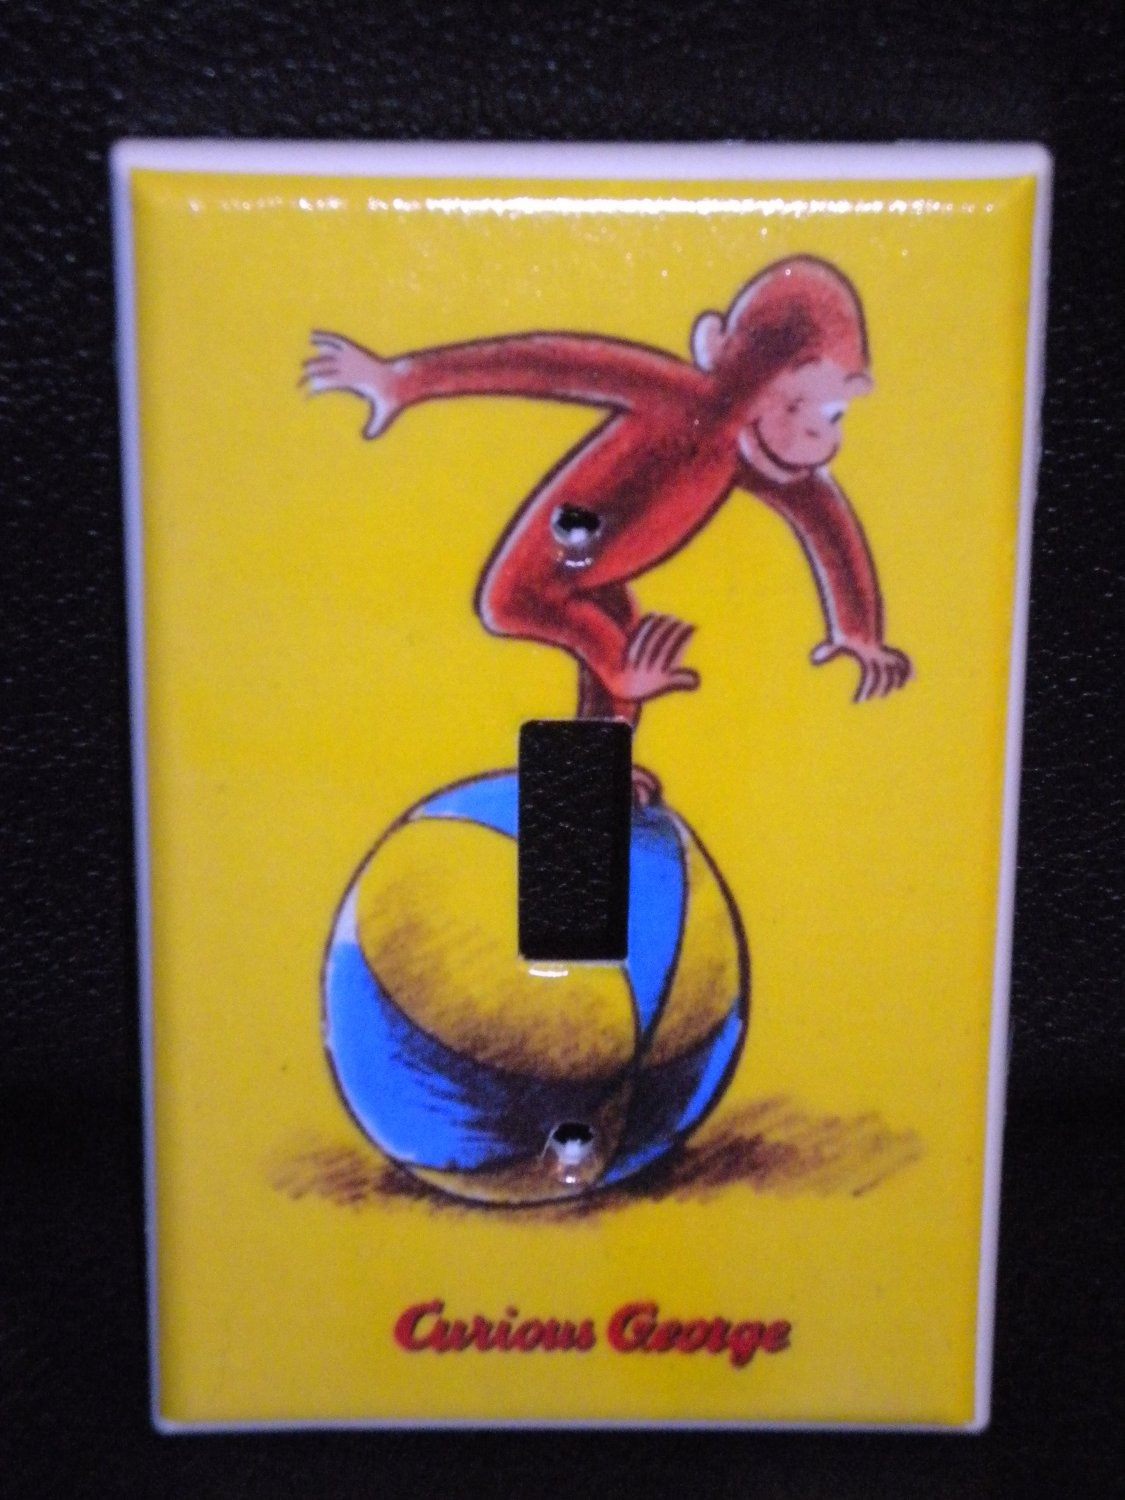 CURIOUS GEORGE LIGHT SWITCH COVER Monkey on ball yellow